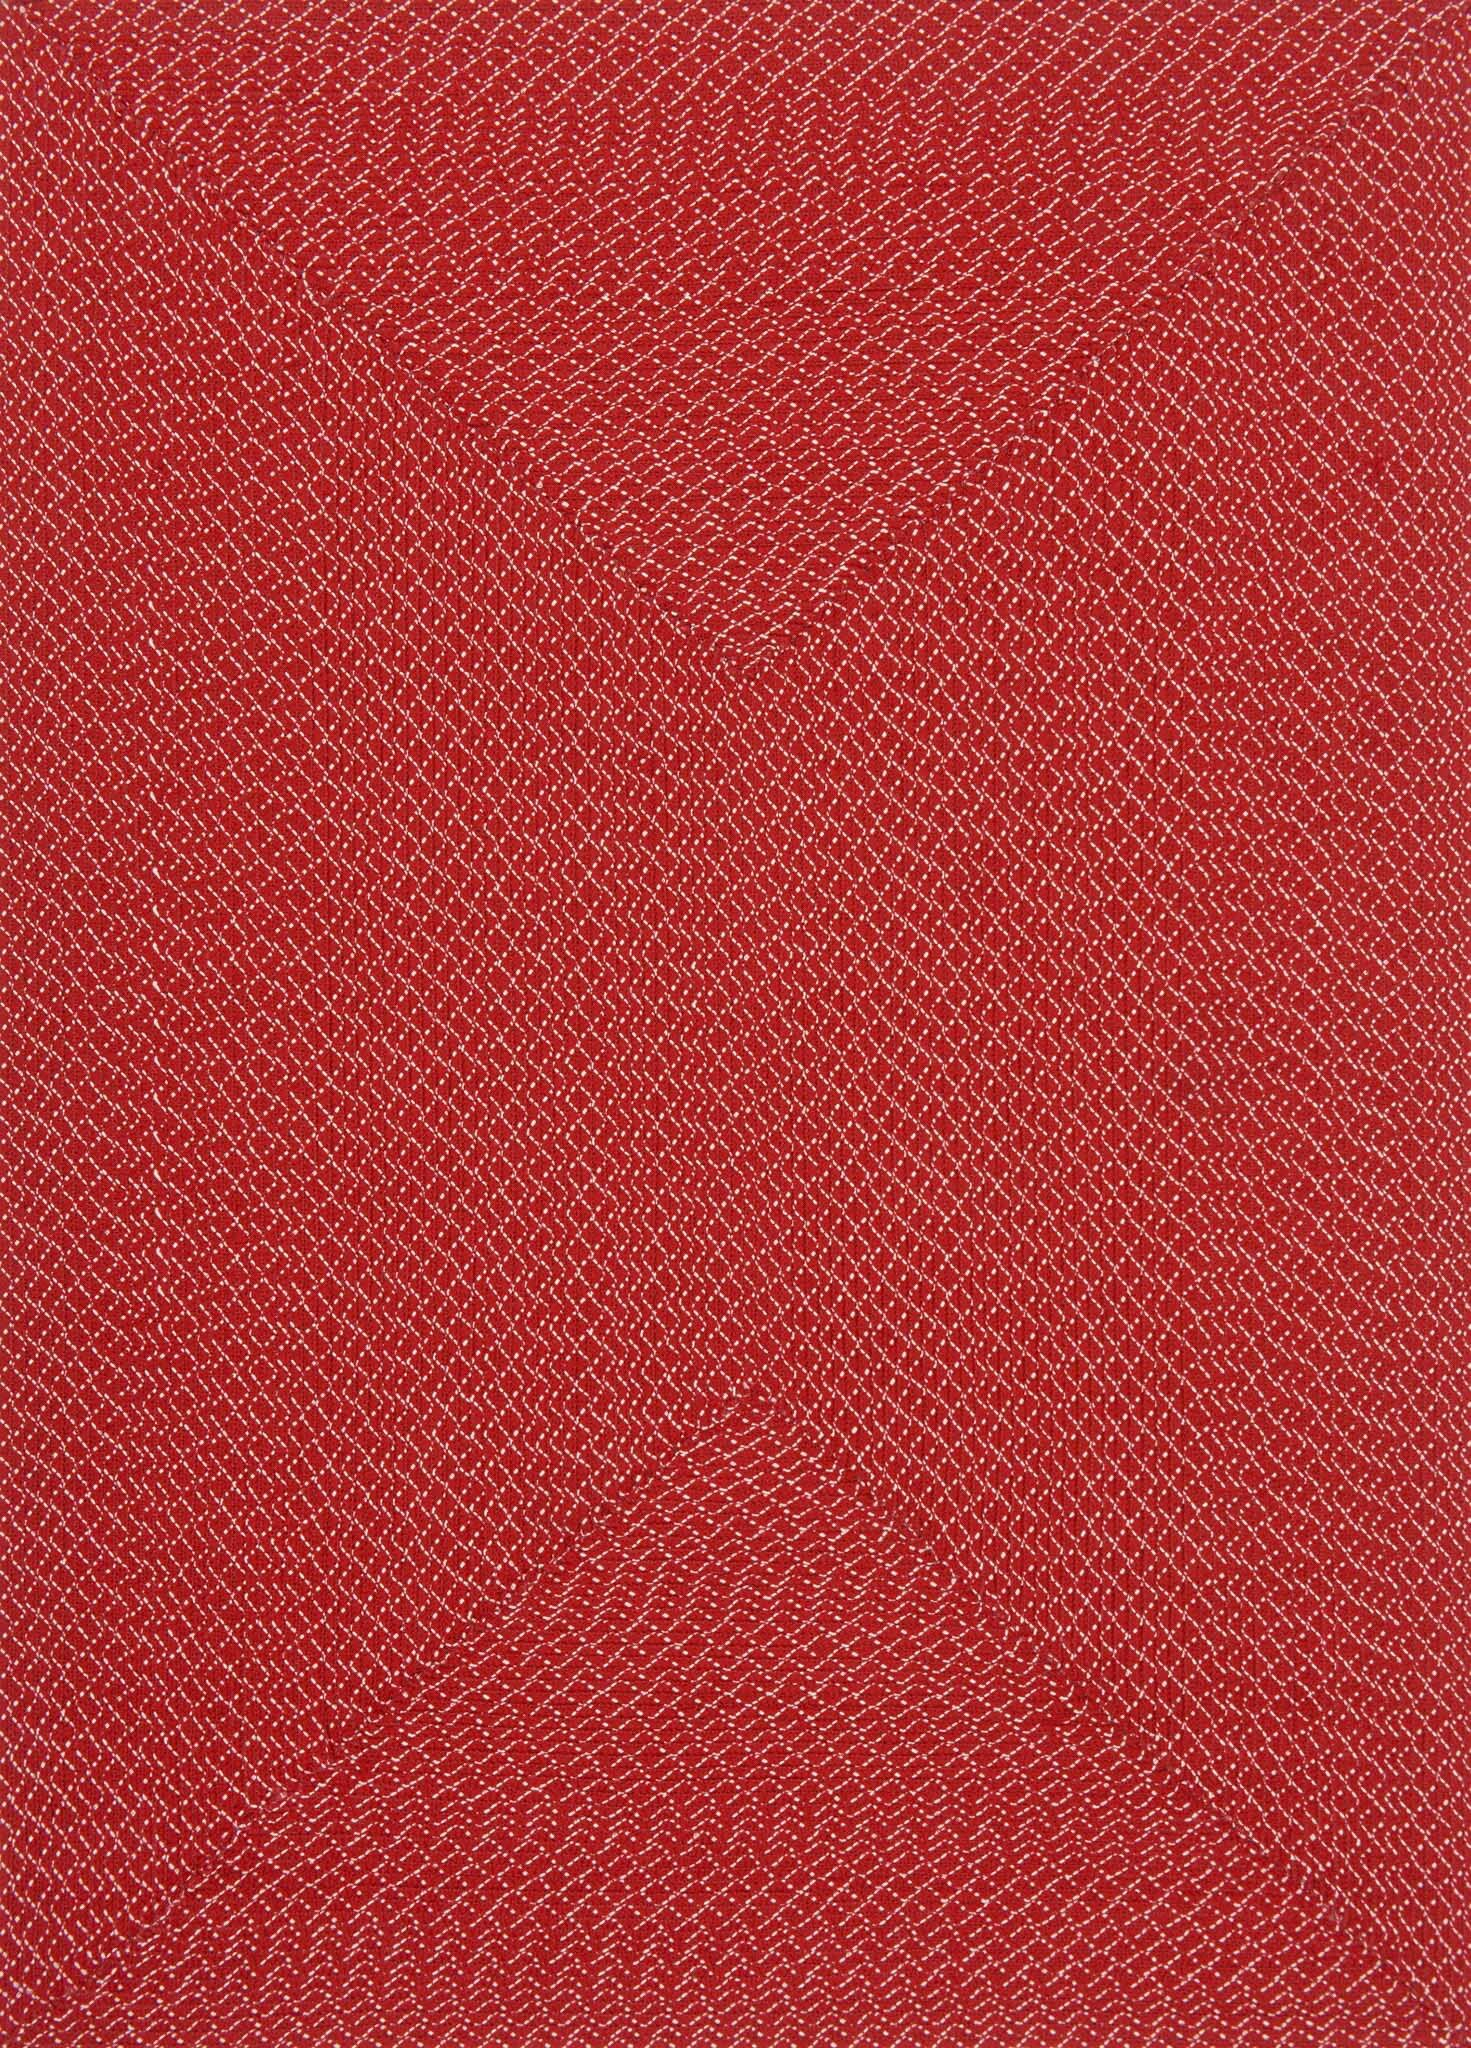 Daniell Hand-Woven Red Indoor/Outdoor Area Rug Rug Size: Rectangle 7'9